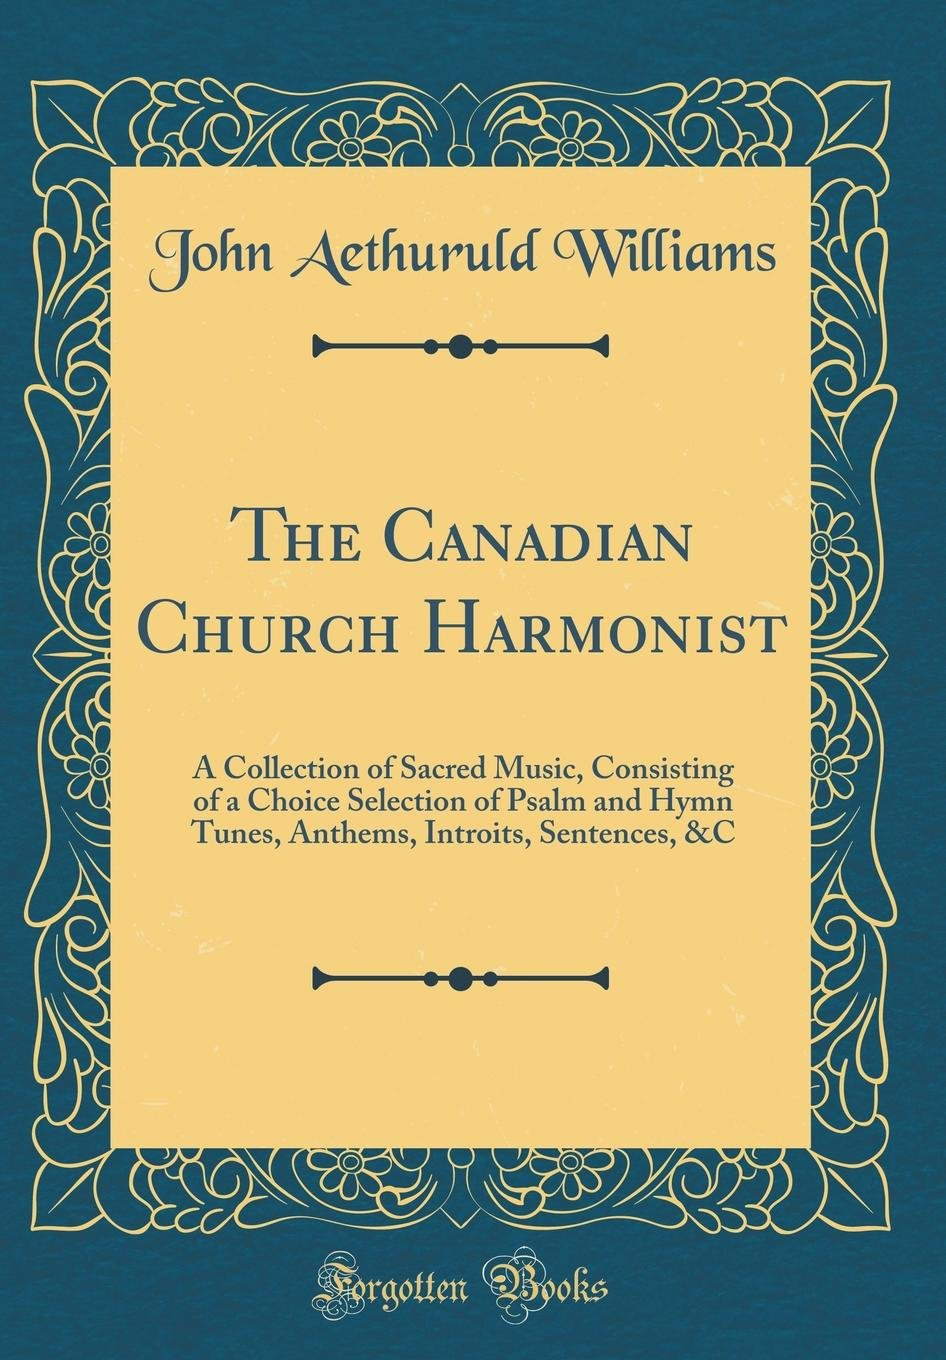 Download The Canadian Church Harmonist: A Collection of Sacred Music, Consisting of a Choice Selection of Psalm and Hymn Tunes, Anthems, Introits, Sentences, &c (Classic Reprint) PDF ePub fb2 book